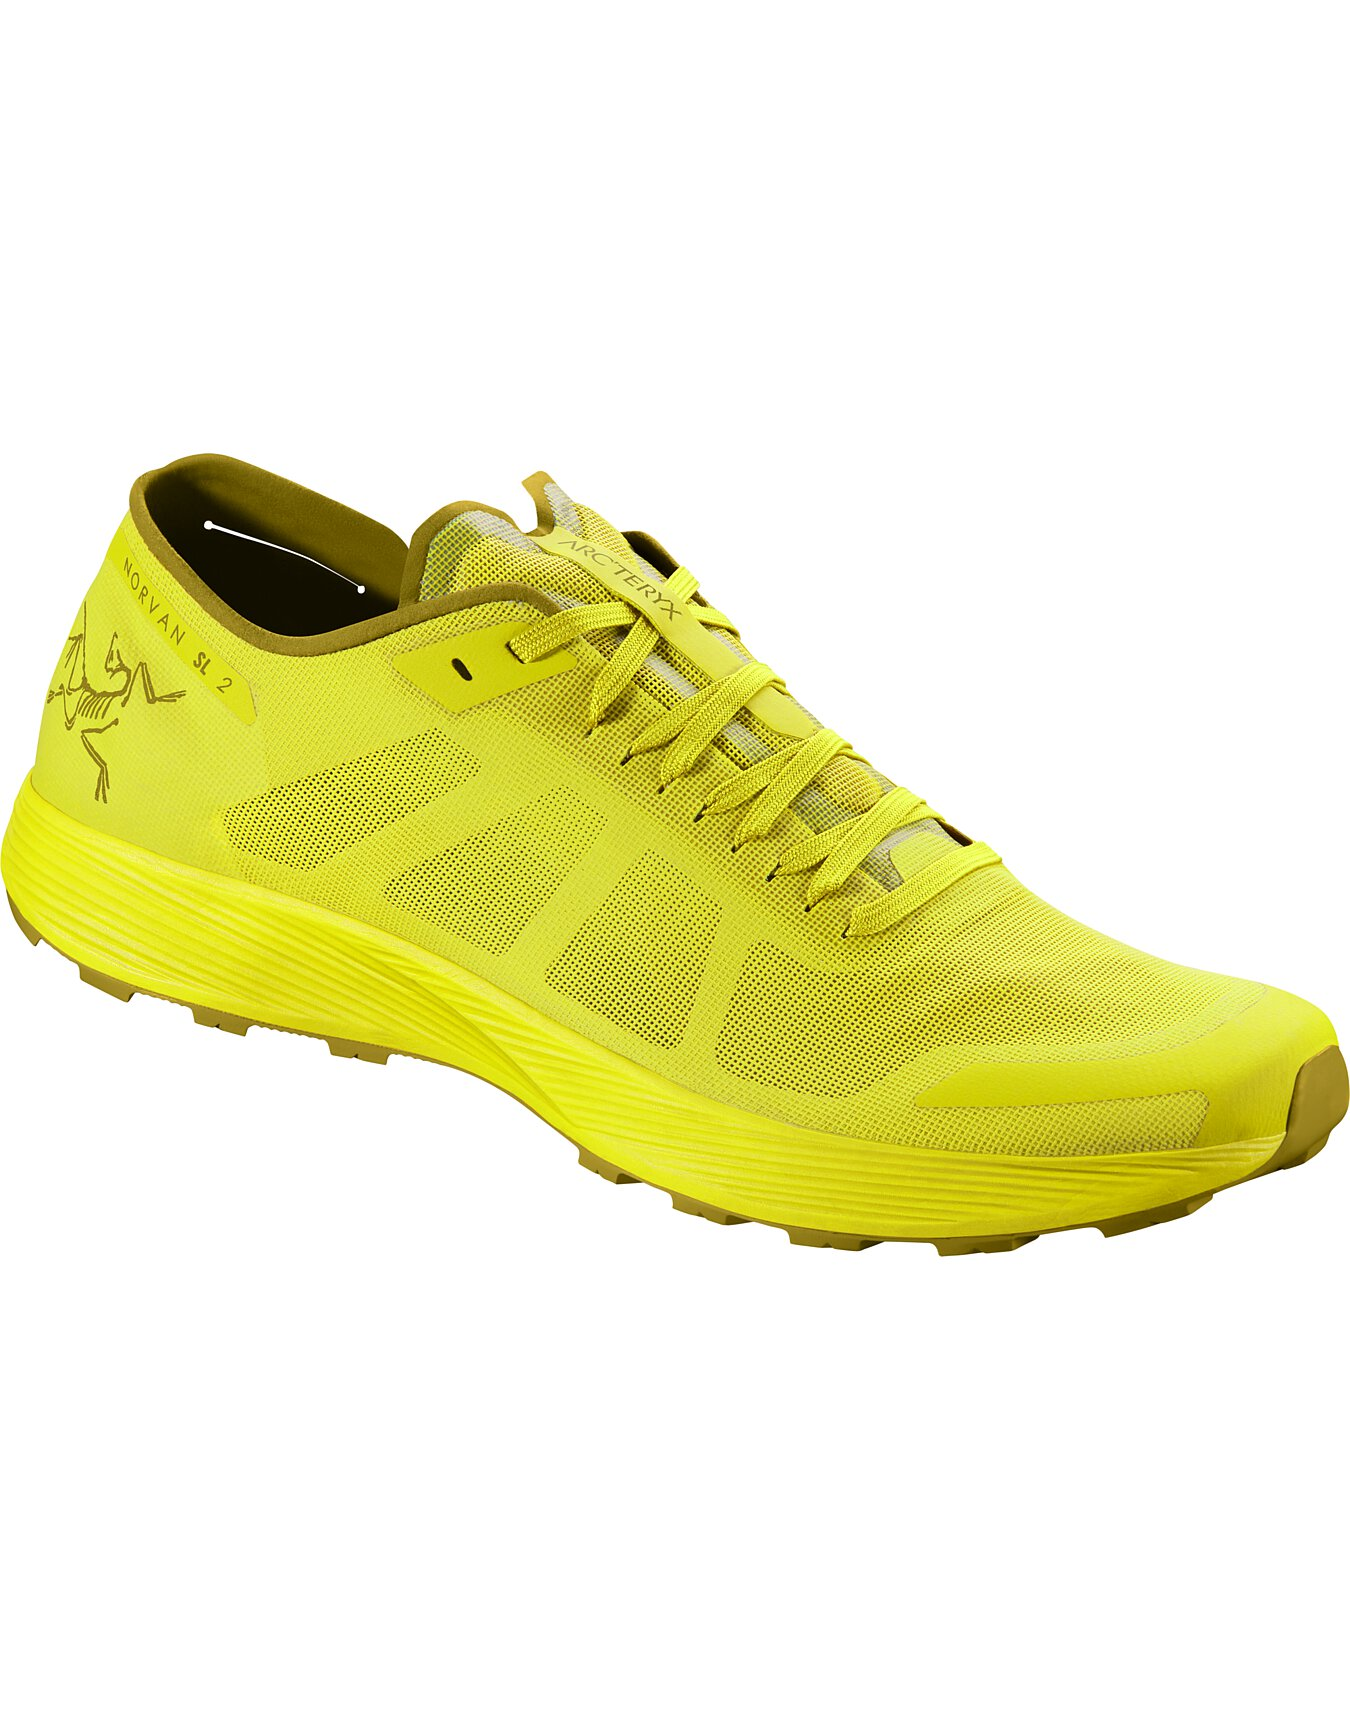 Norvan SL 2 Shoe Men's